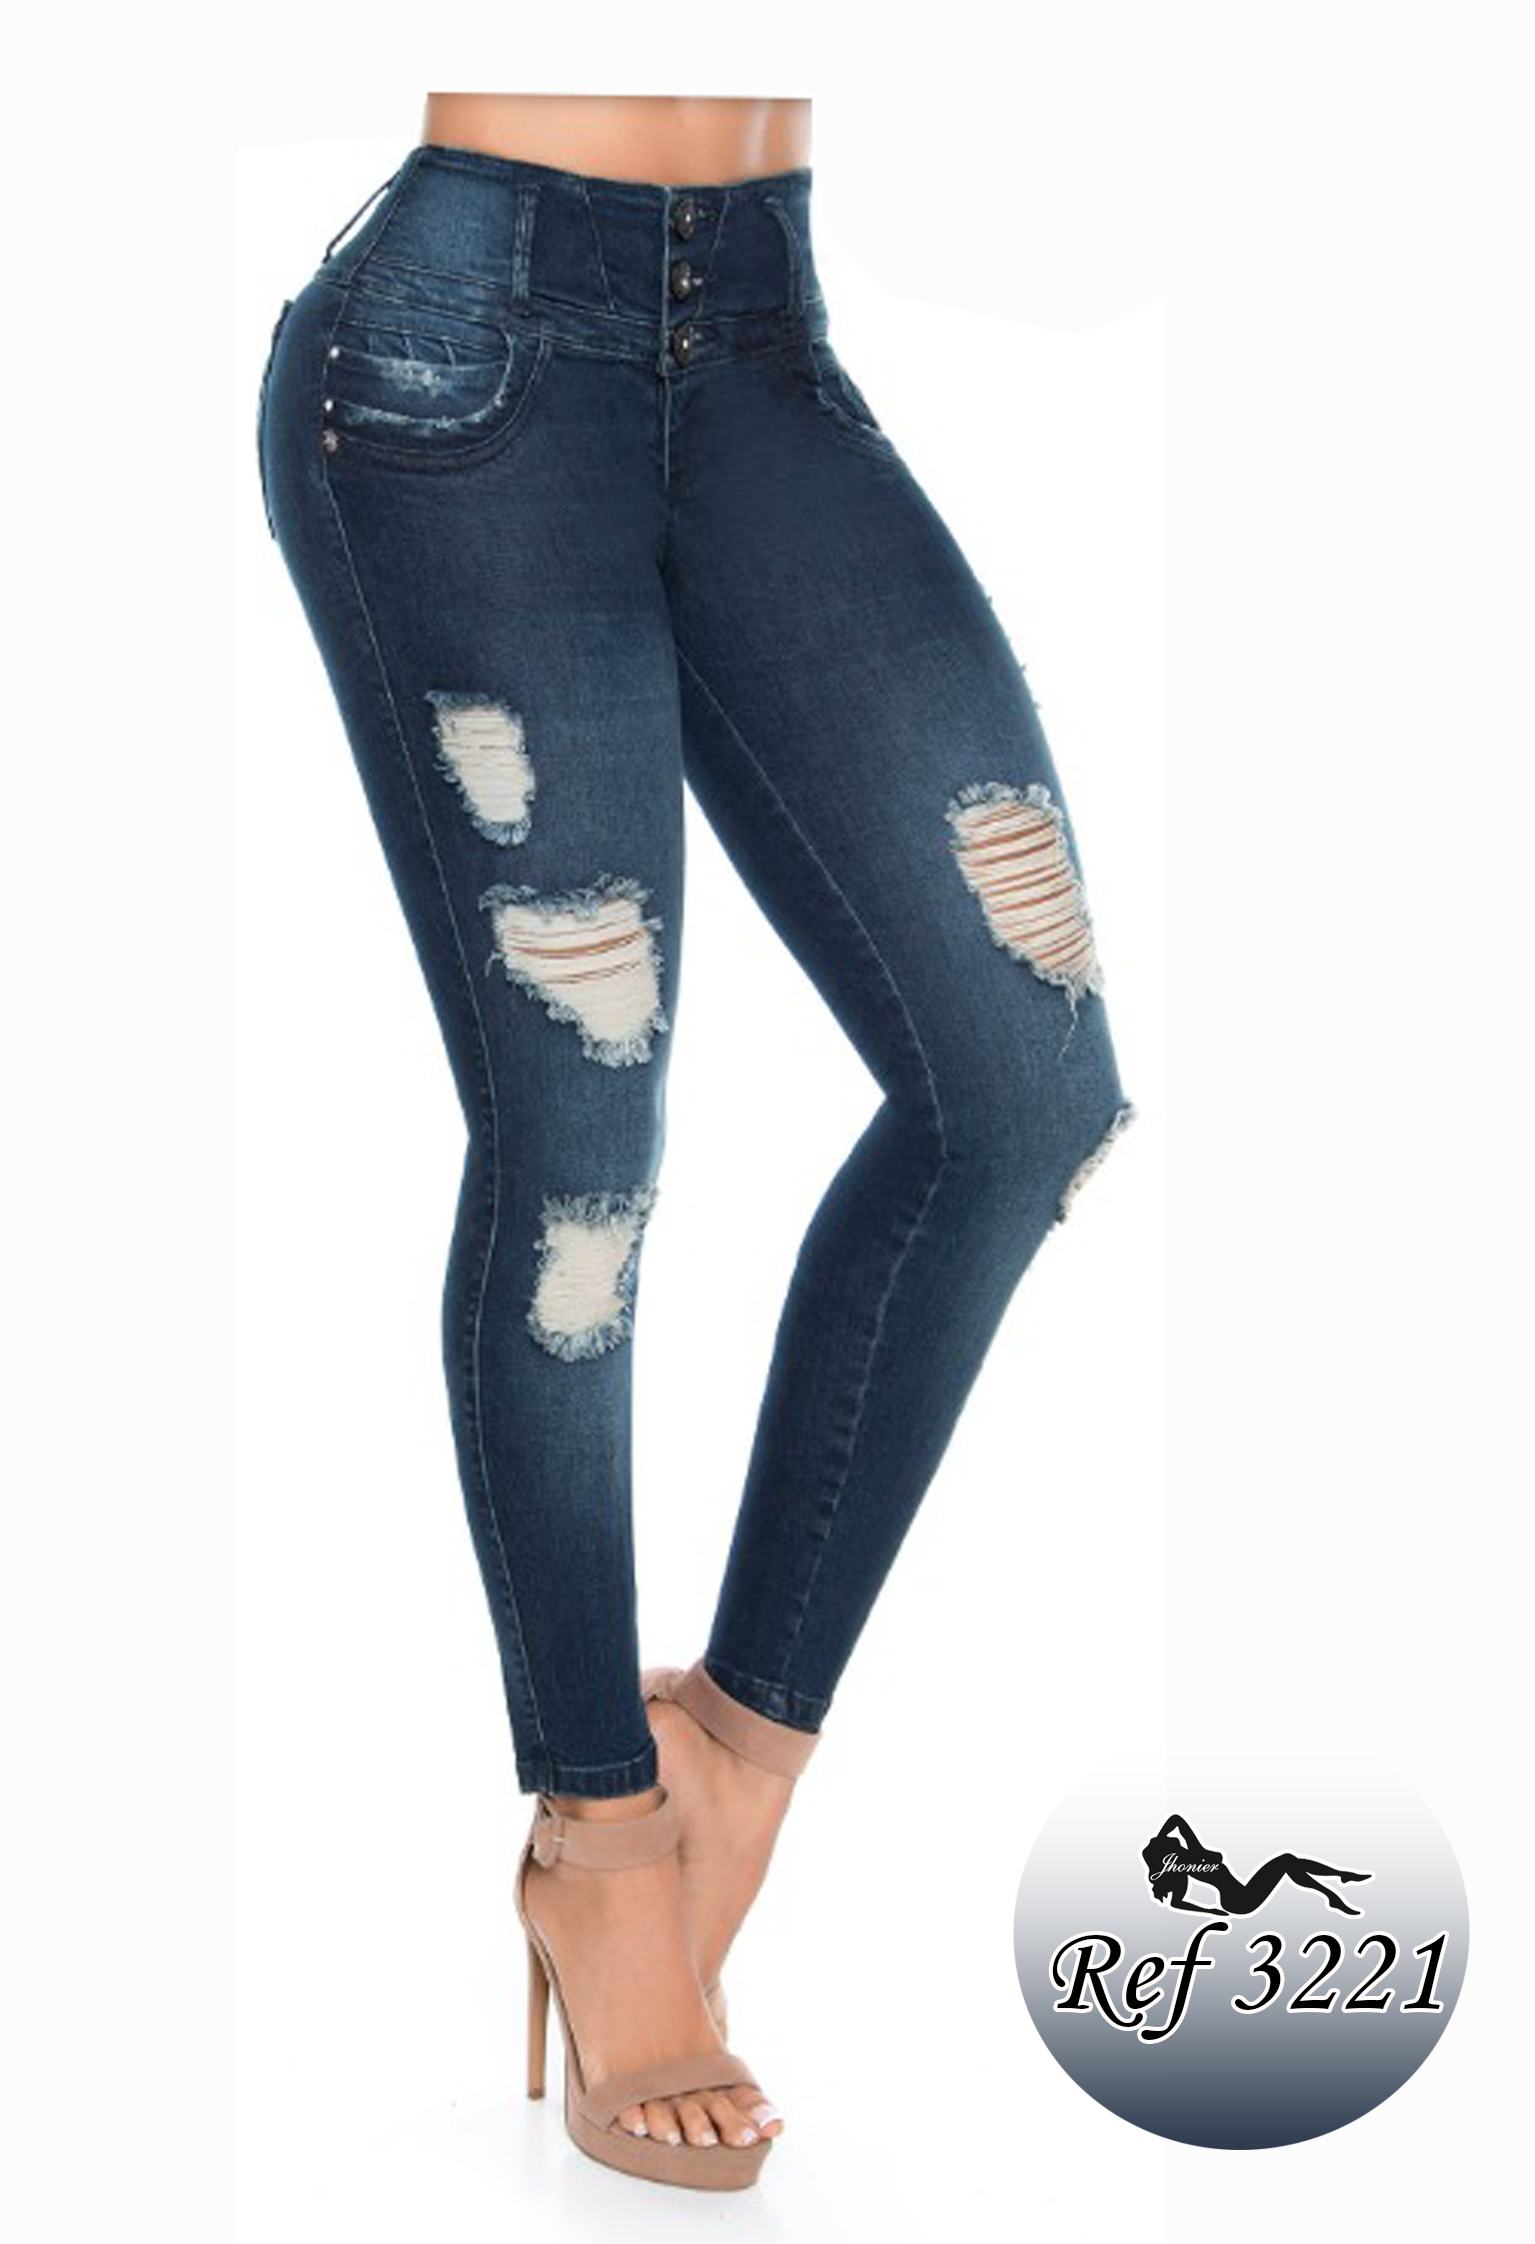 Jeans Colombiano 3221